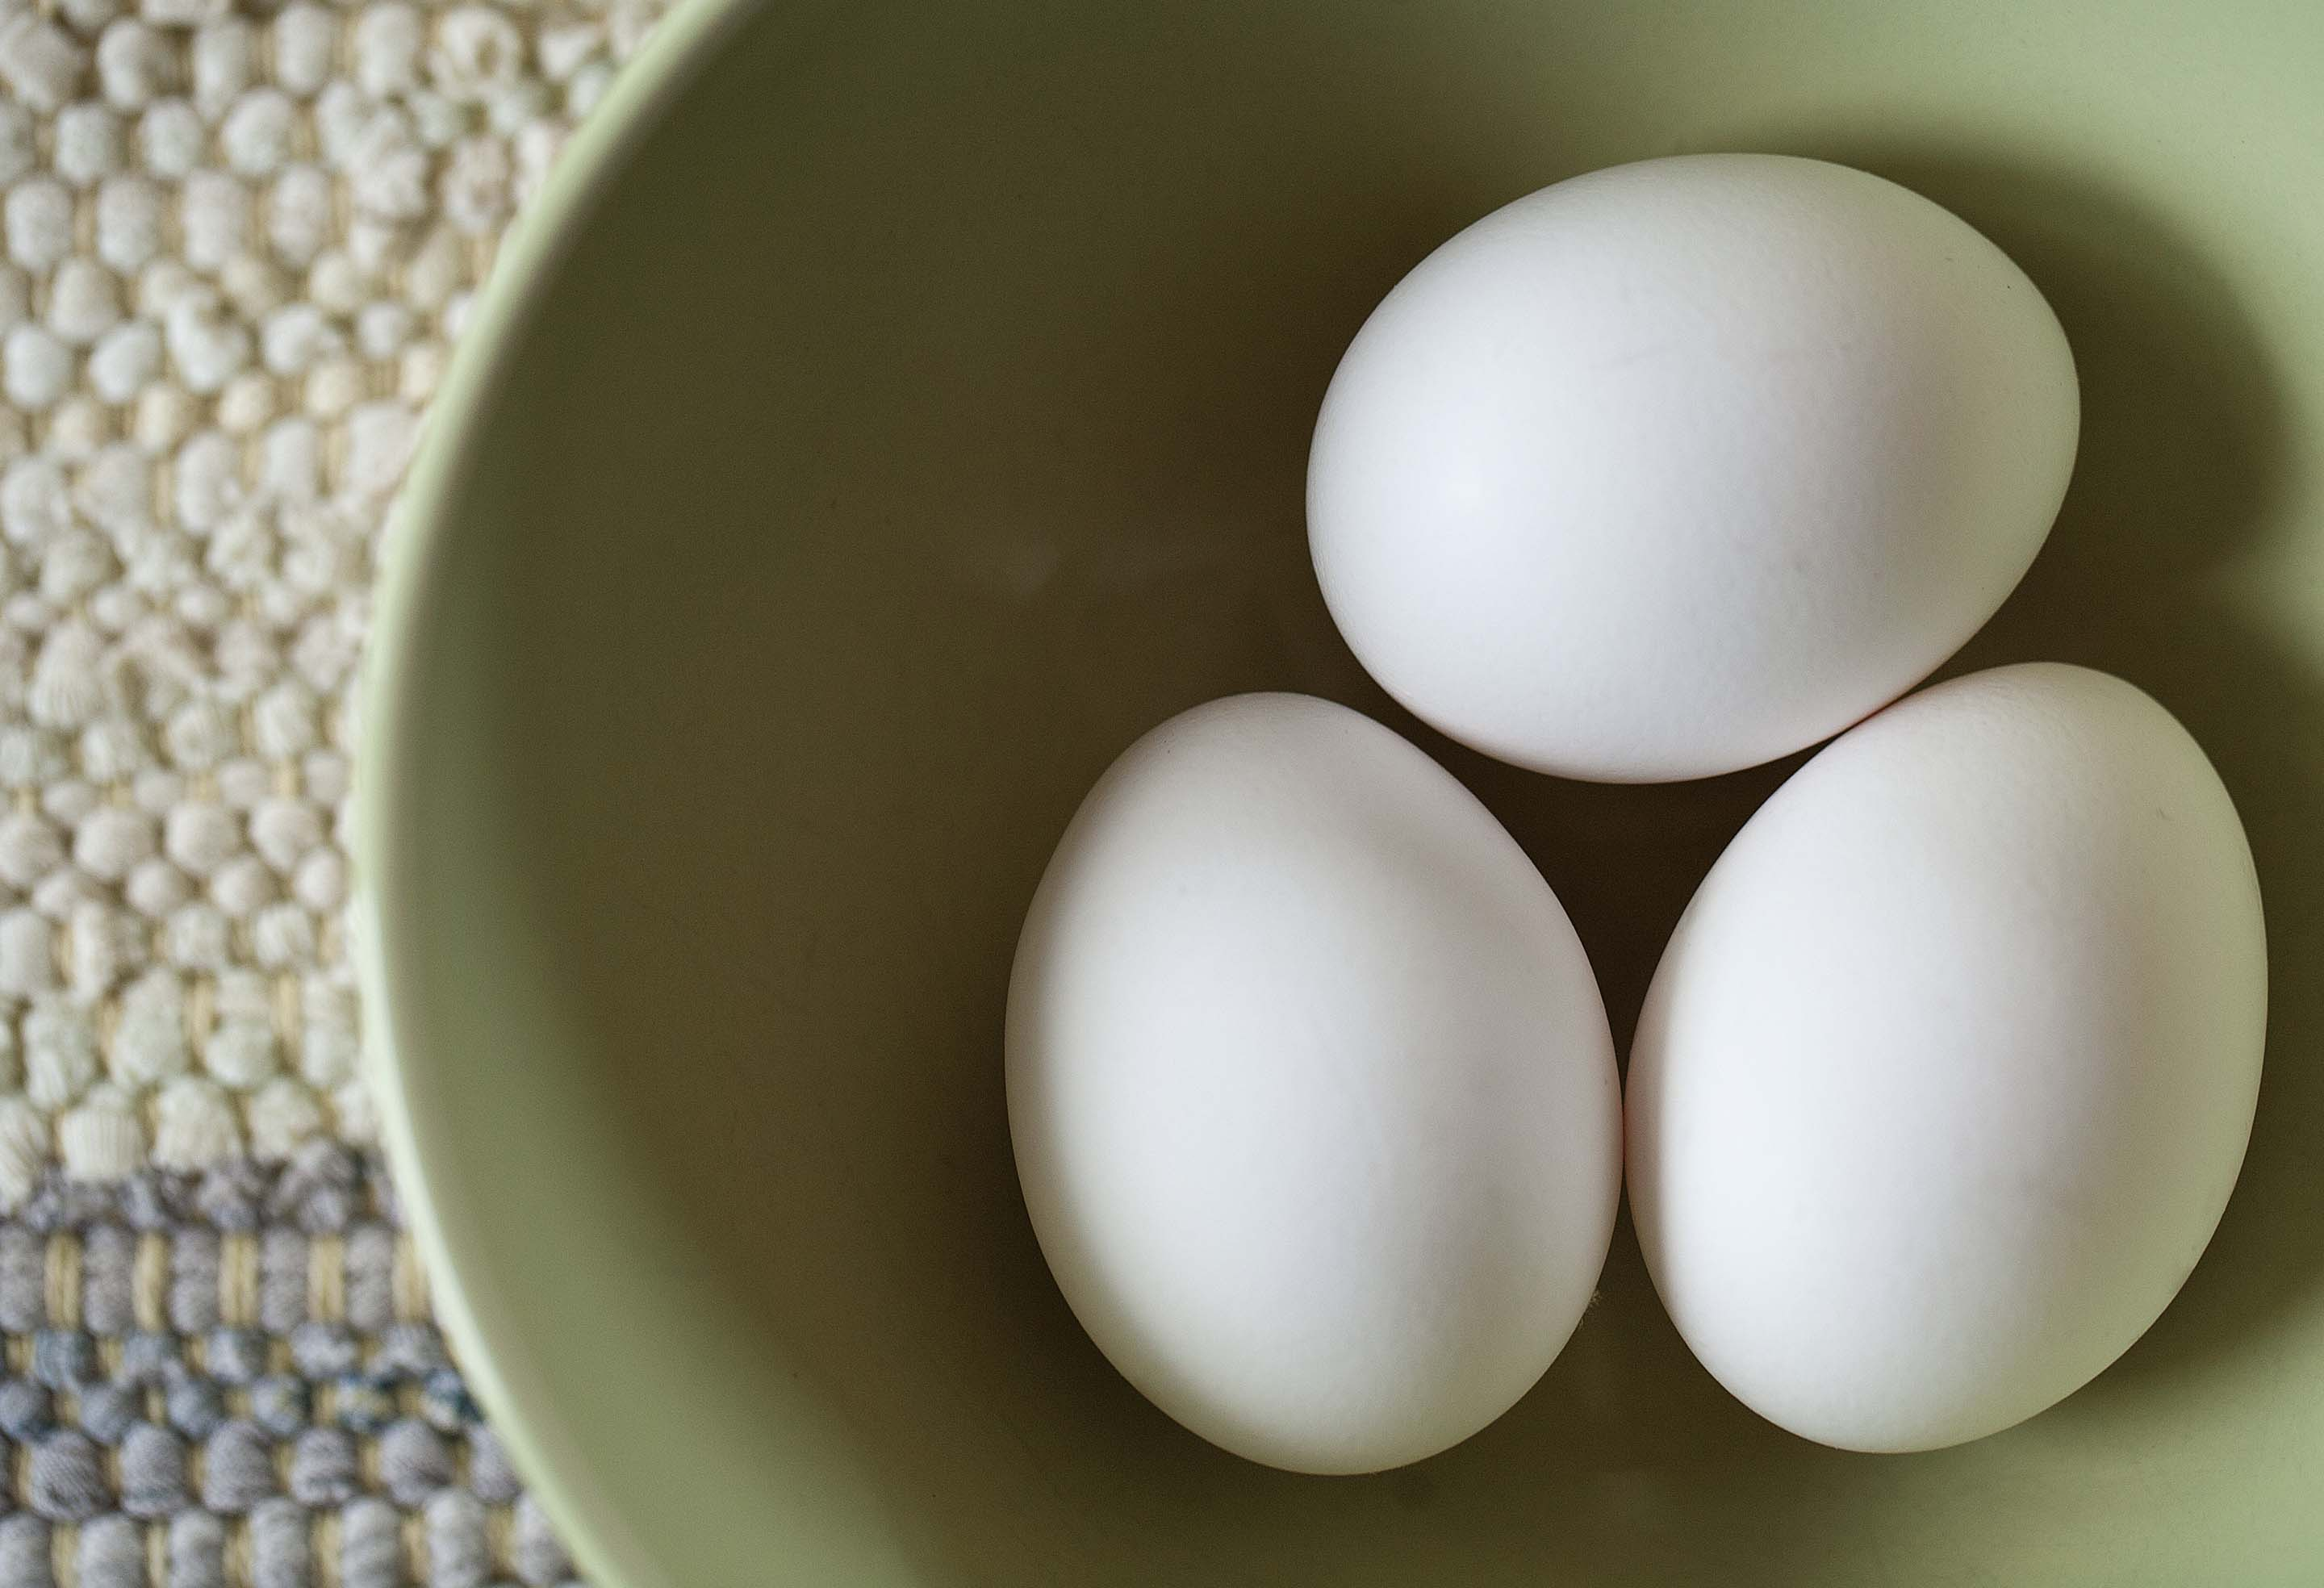 a bowl with three white eggs as an illustration of egg nutrition